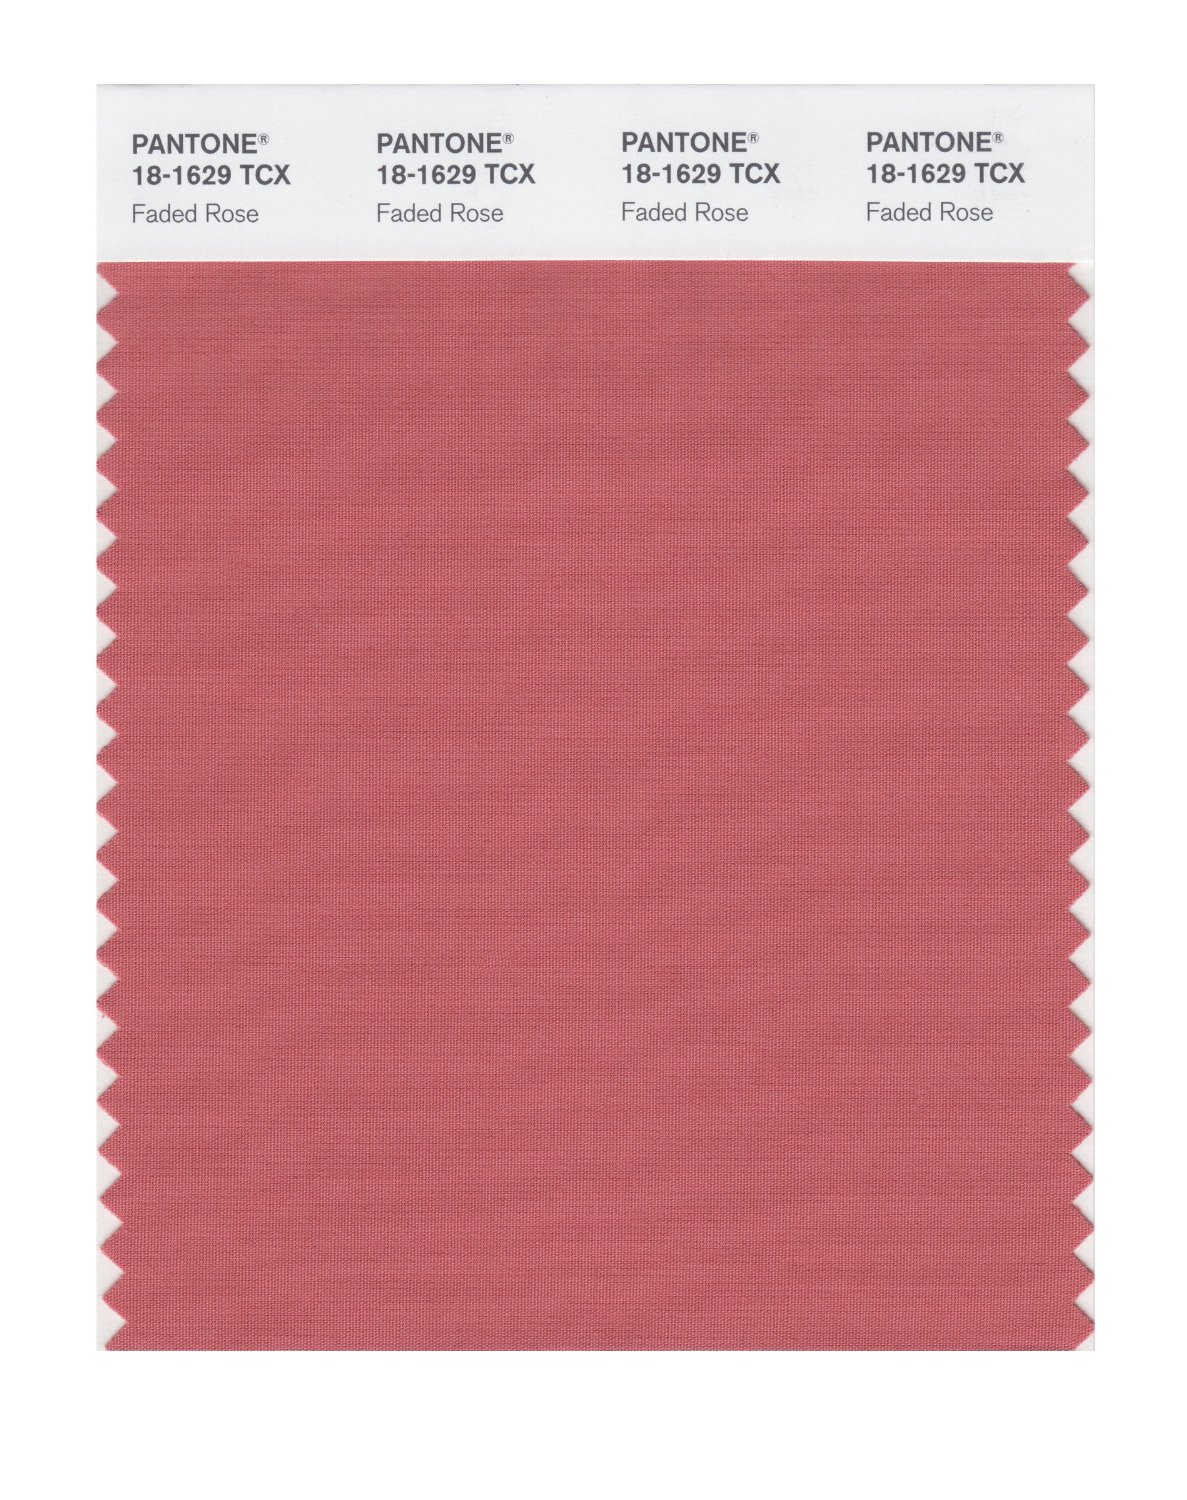 Pantone Smart Swatch 18-1629 Faded Rose